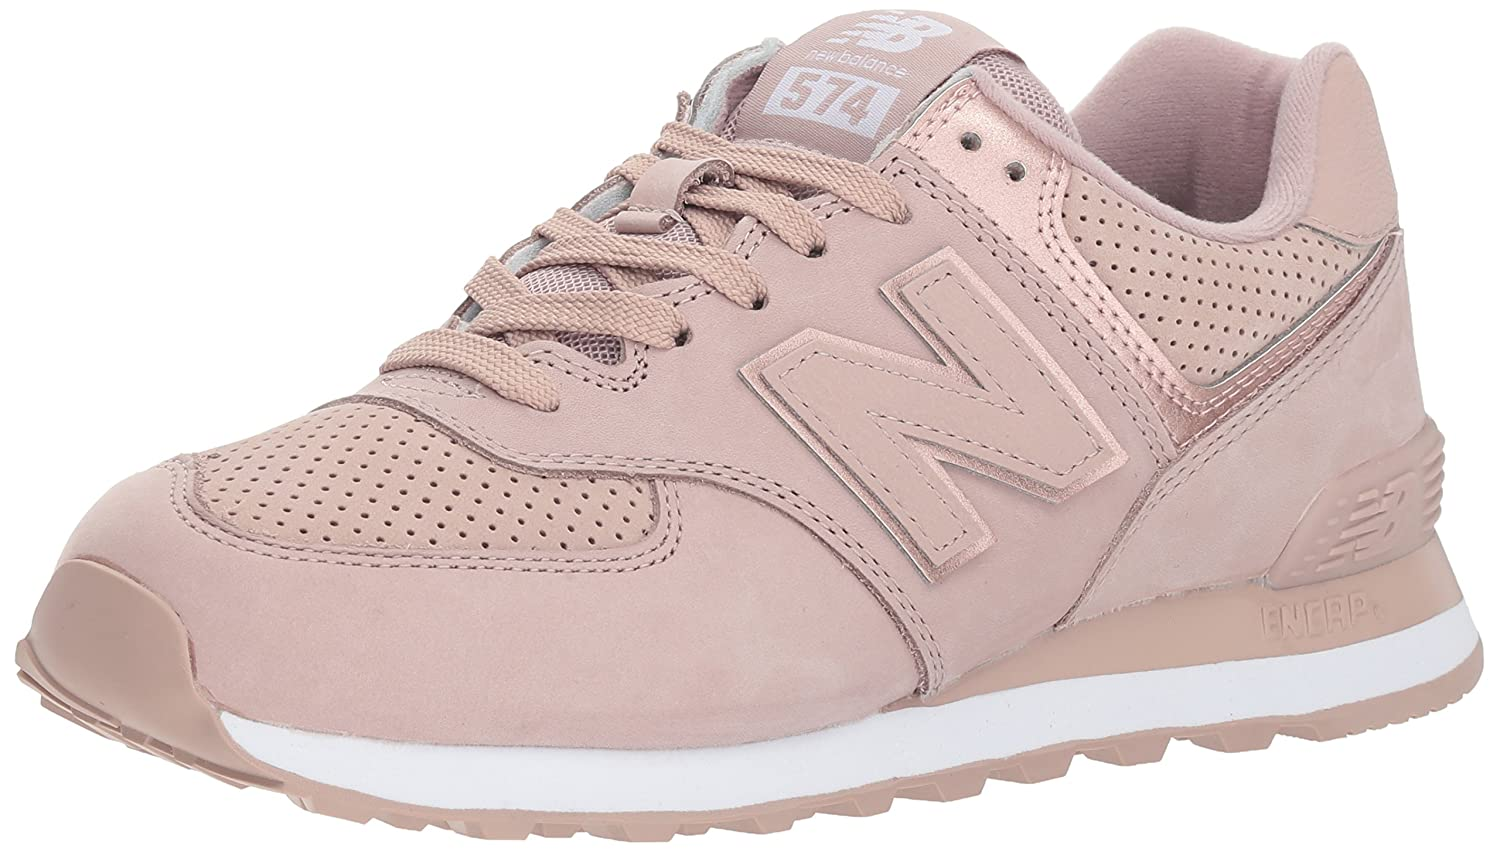 New Balance Women's 574v2 Sneaker B075R767BK 10 D US|Brown